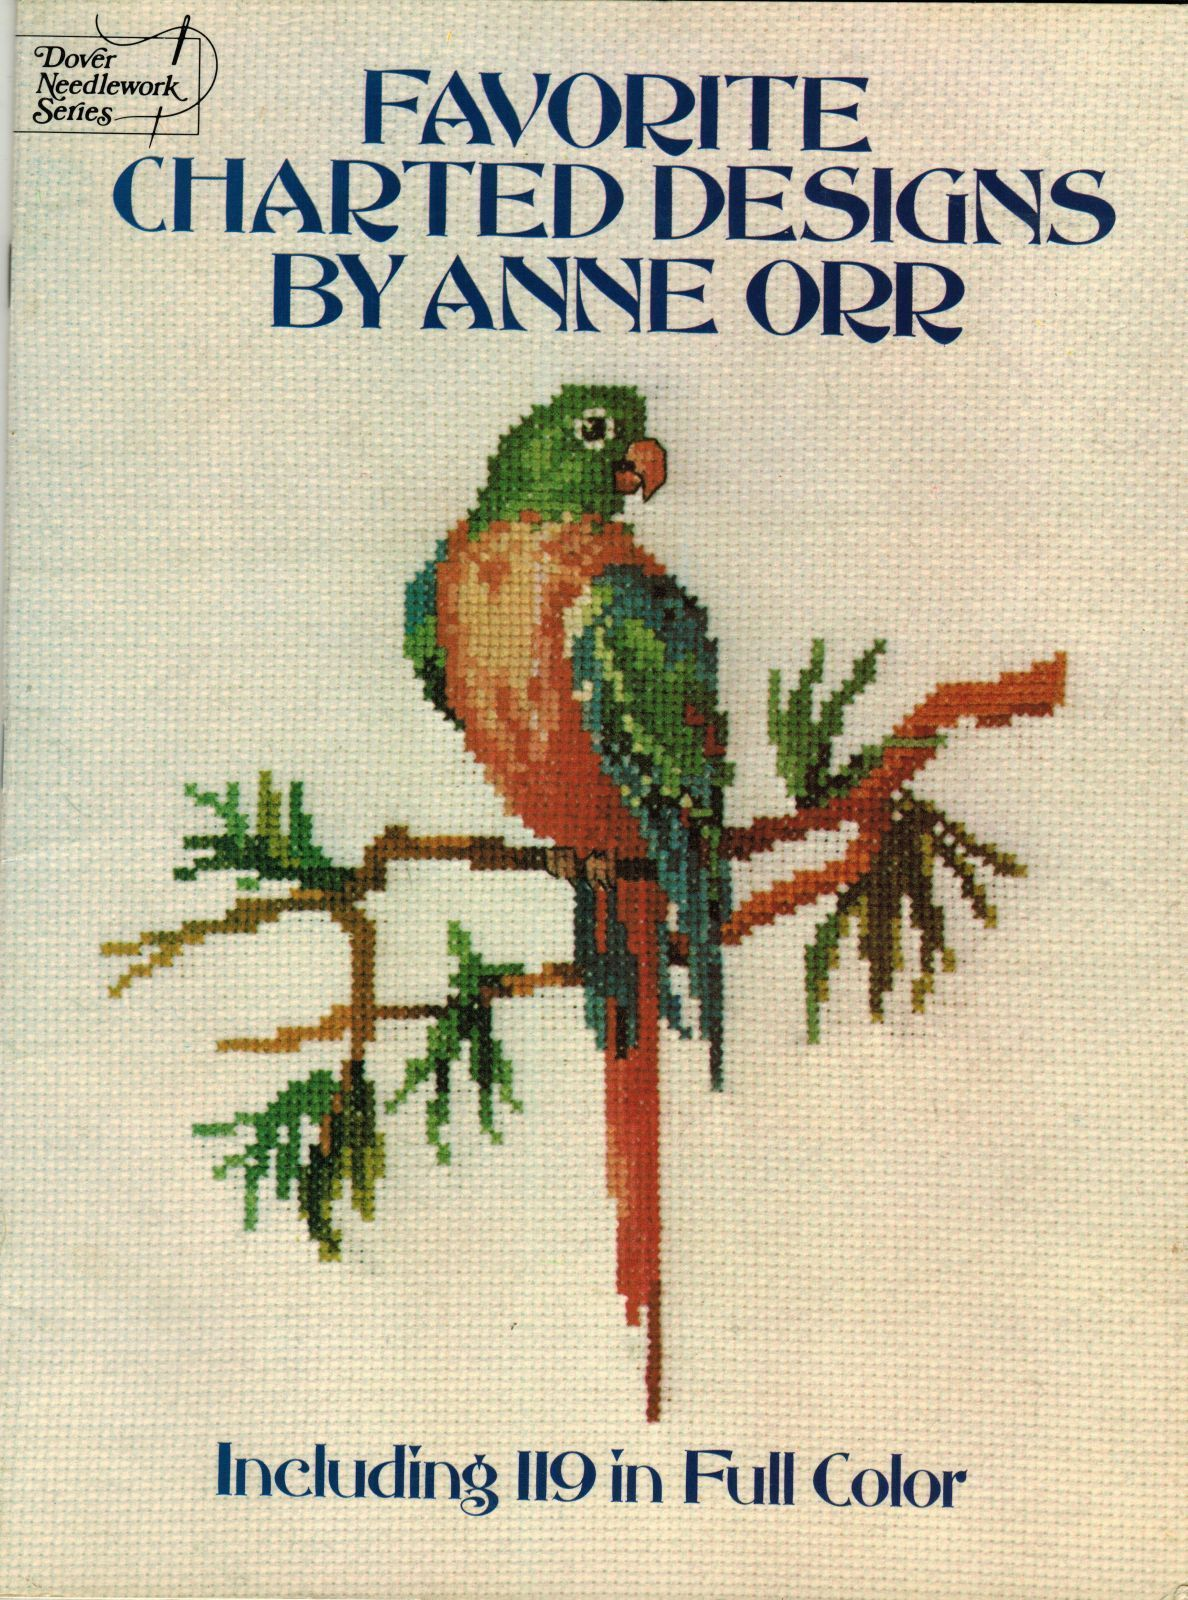 Primary image for Cross Stitch Needlework Anne Orr Favorite Charted 119 Full Color Designs Pattern